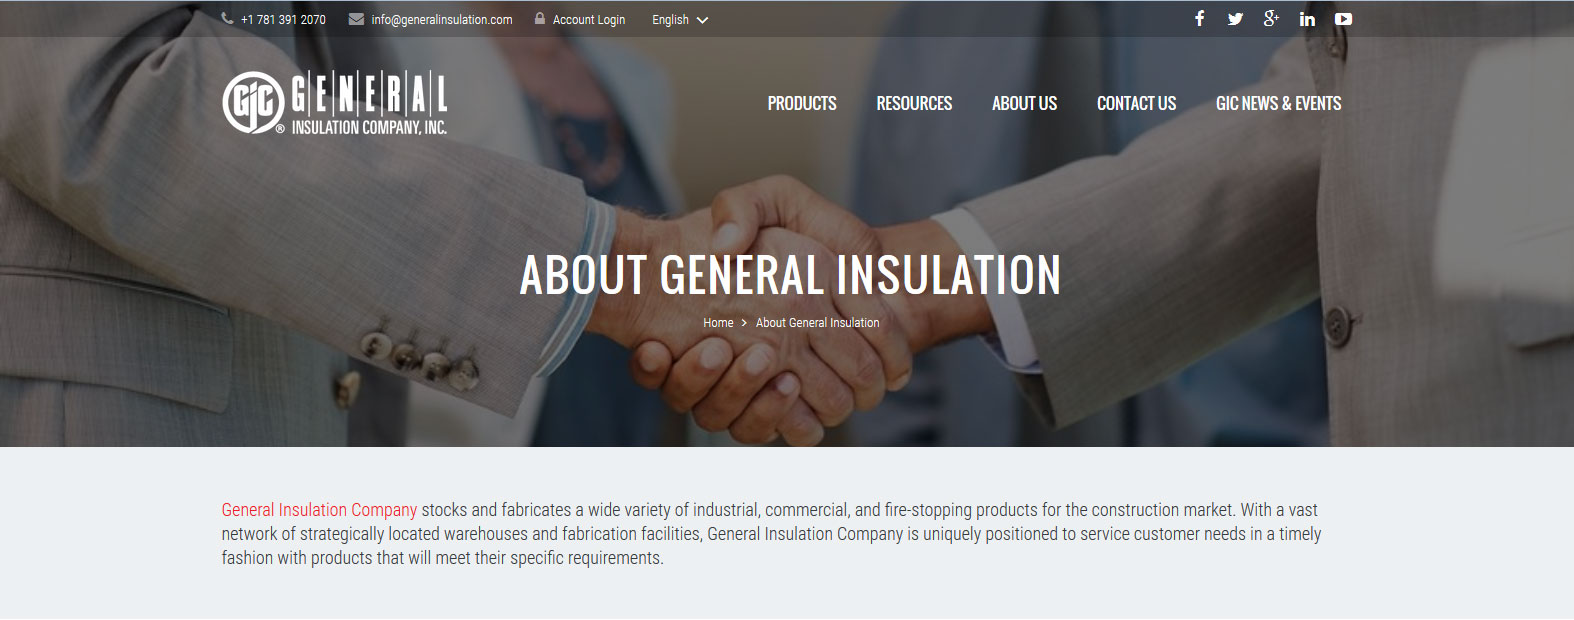 General Insulation Company - Products Distributor